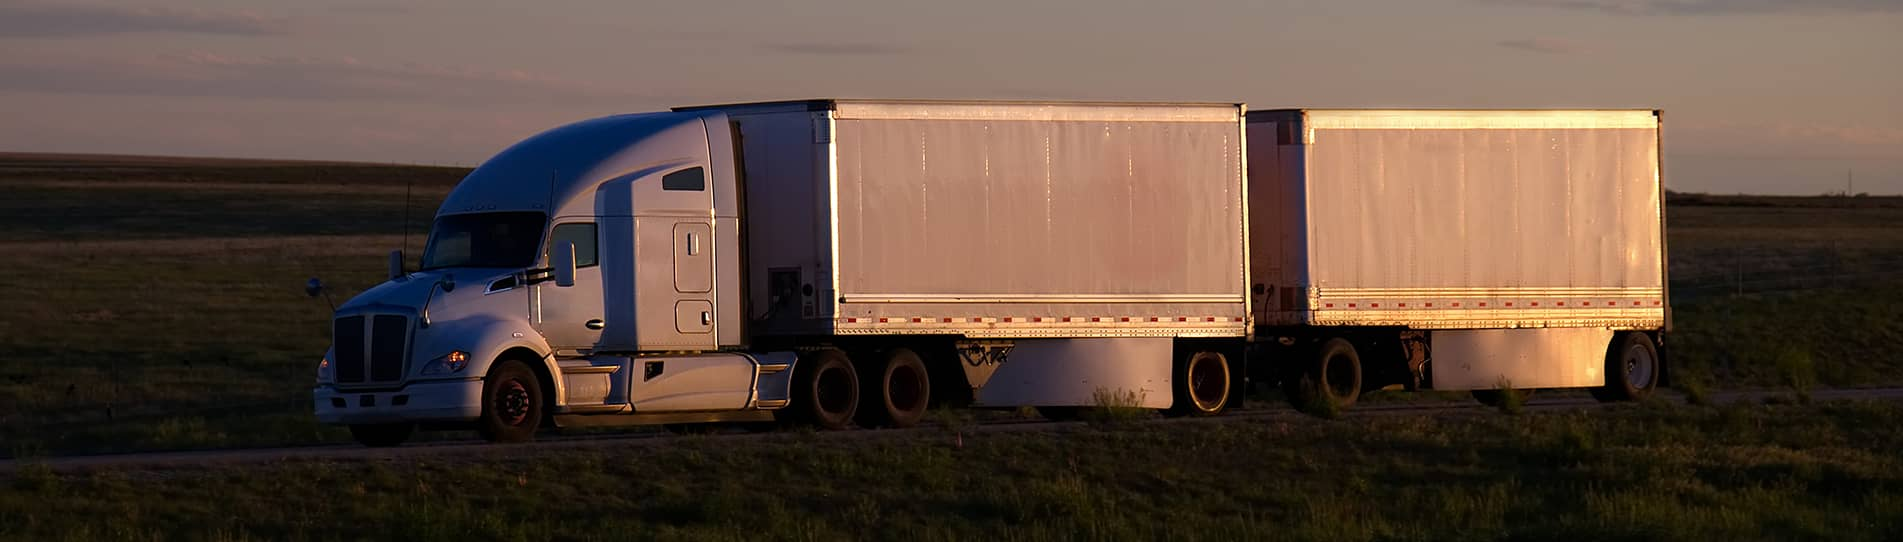 Atlanta Trucking Company, Trucking Services and Freight Forwarding Services